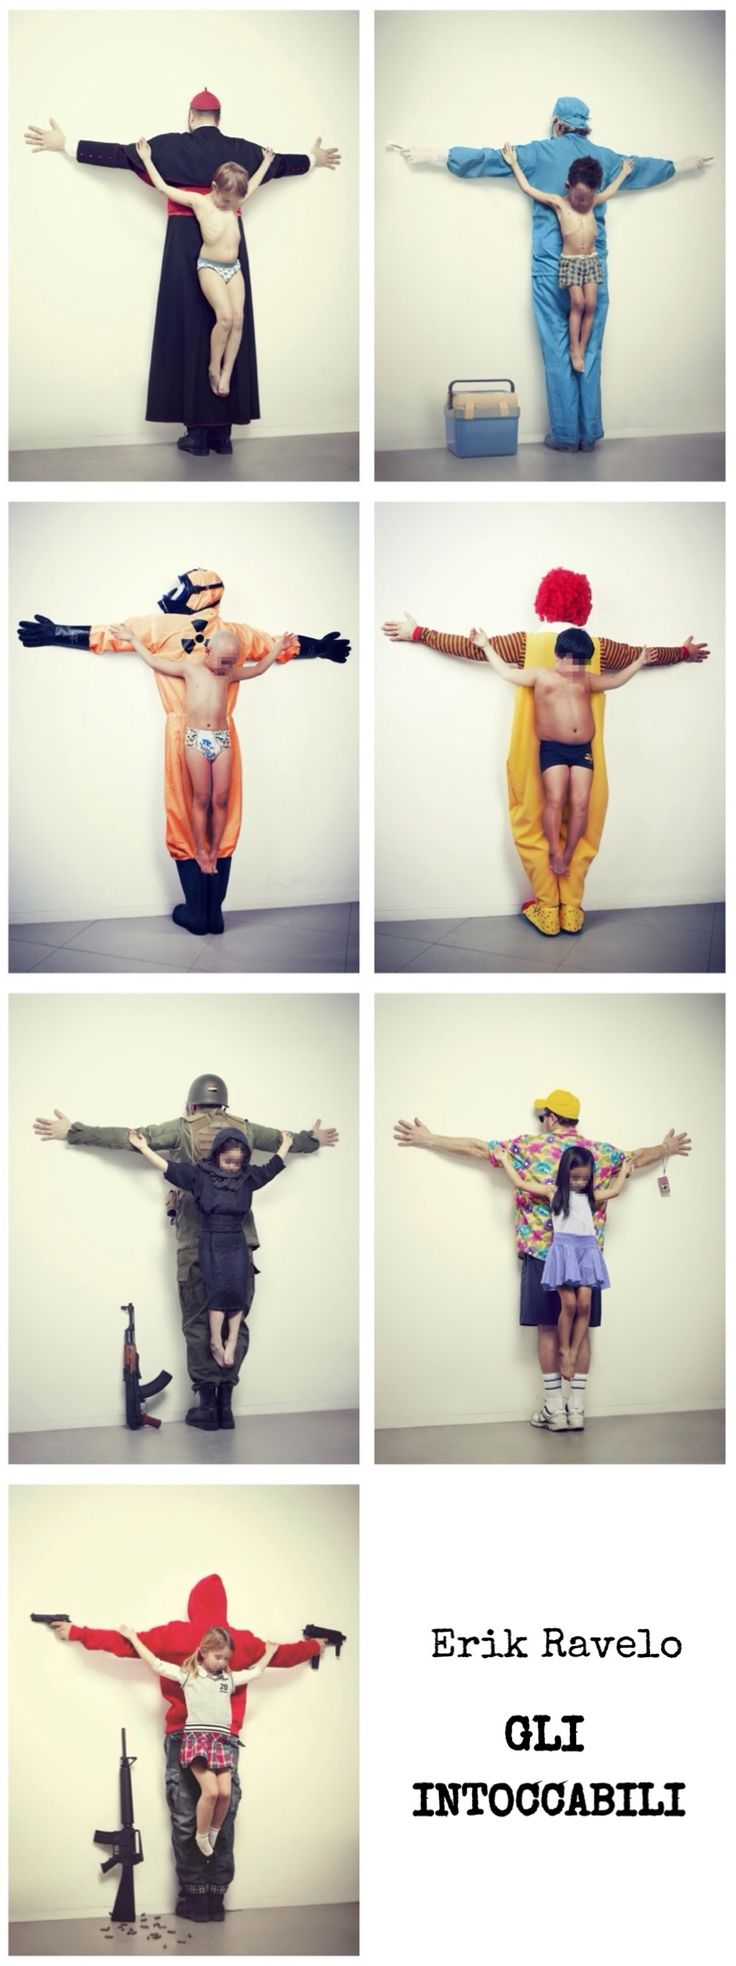 """Series produced by Erik Ravelo. """"...seeks the right of children to be protected and report abuses [the children] suffer especially in countries like Brazil, Syria, Thailand, United States, and Japan""""."""